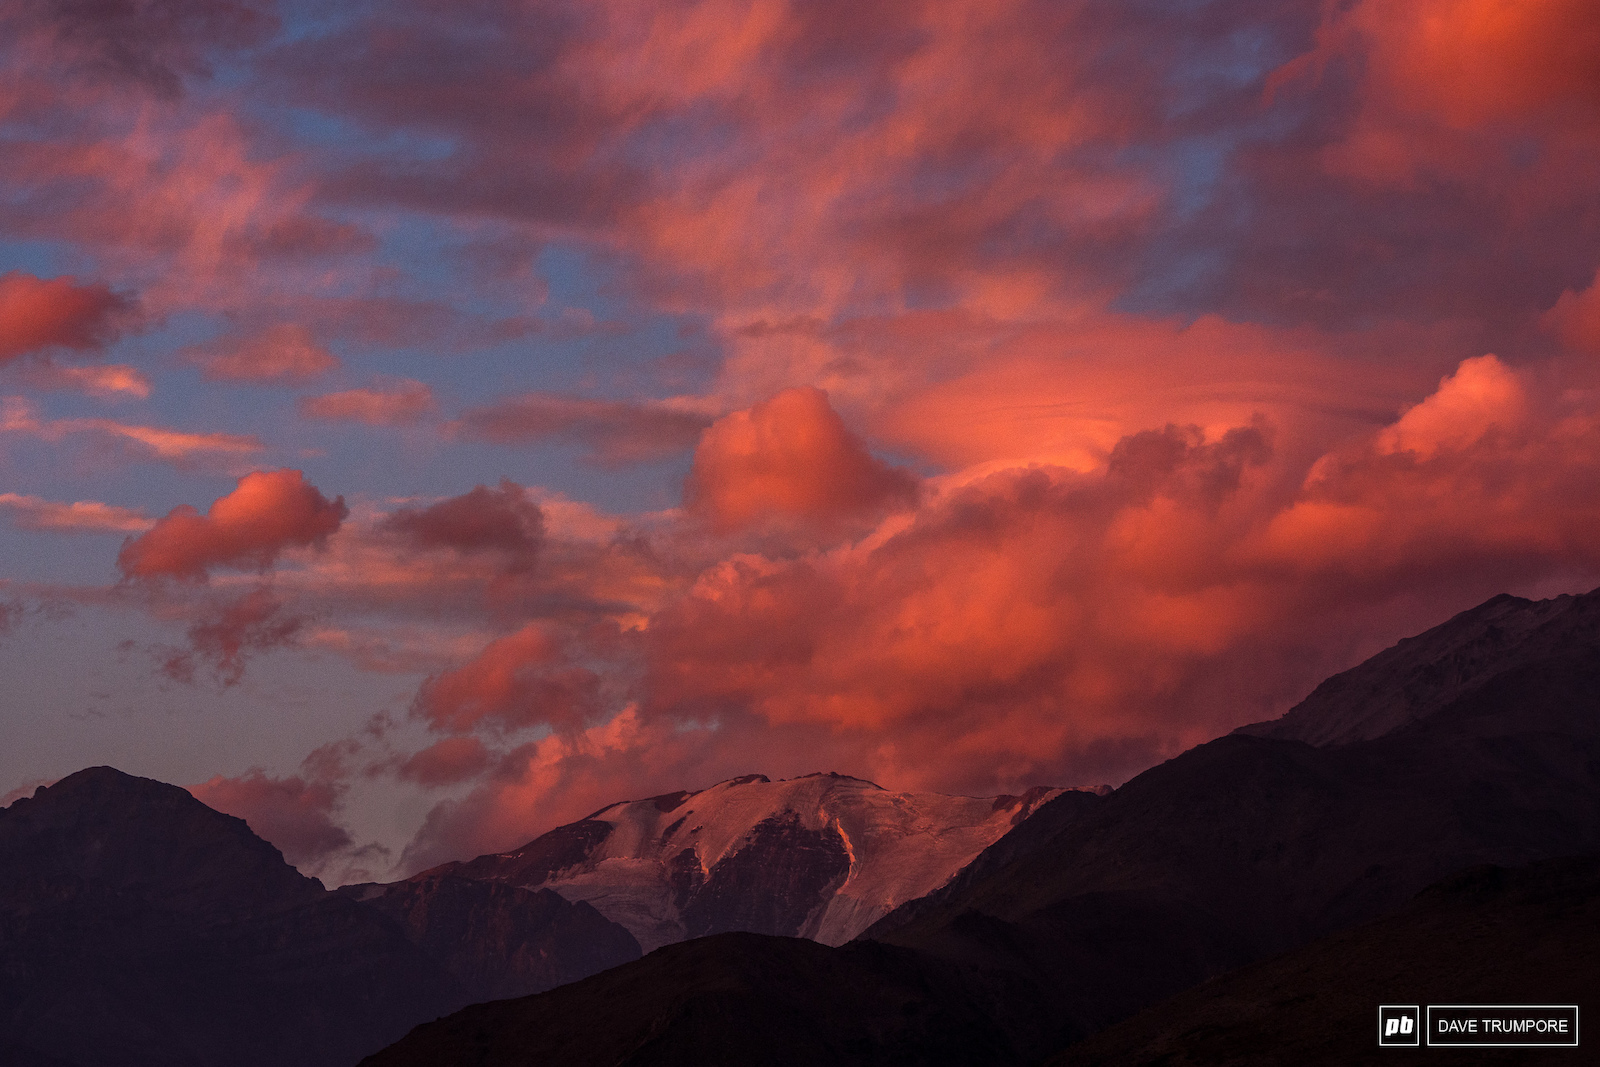 There s a storm brewing in the Andes above Santiago Chile right now. Tune back in over the next two days to keep abreast of all the wild racing action from the opening EWS of 2018.